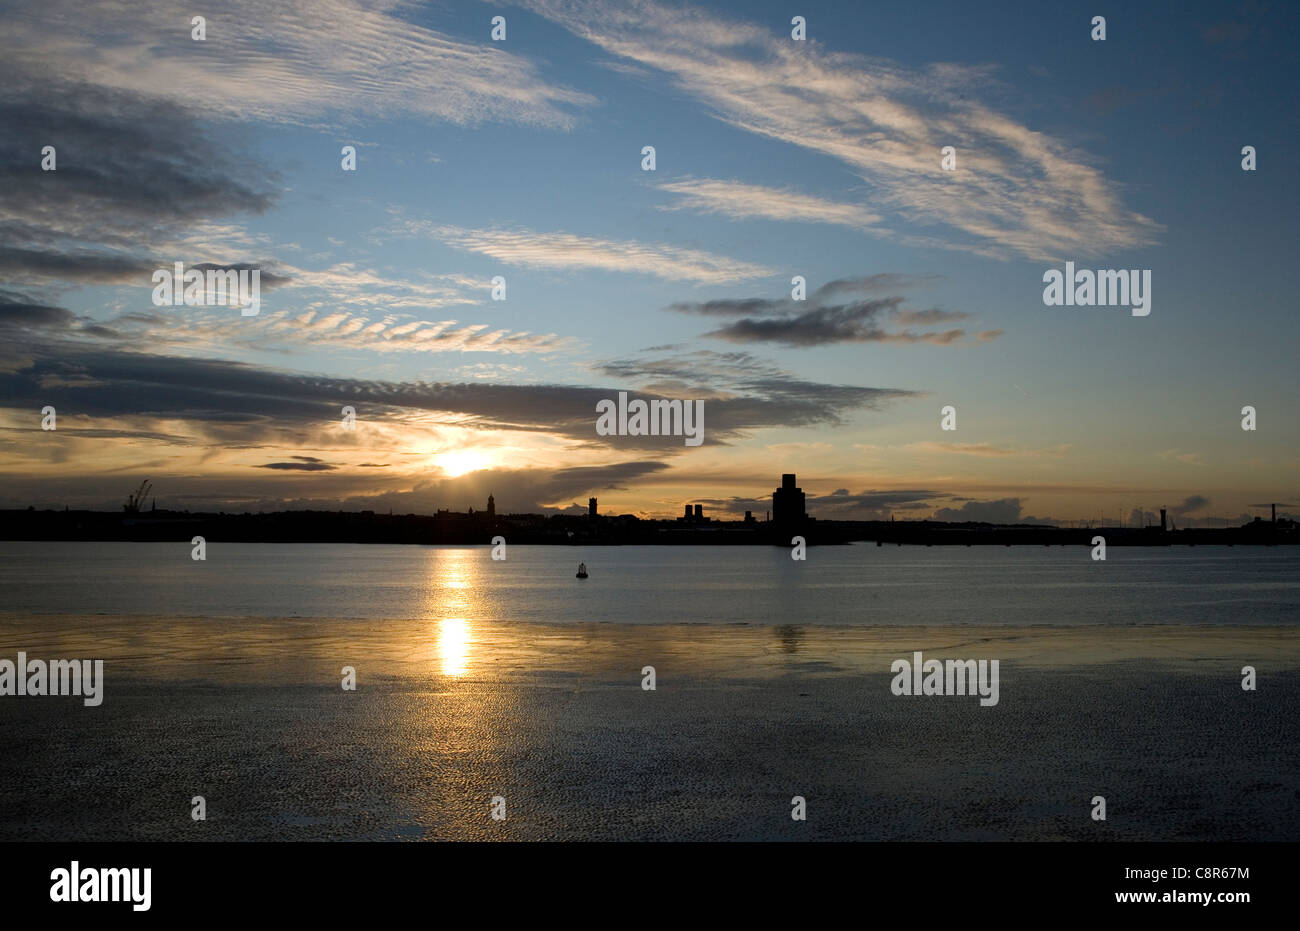 Liverpool UK Sunset looking over mersey river - Stock Image